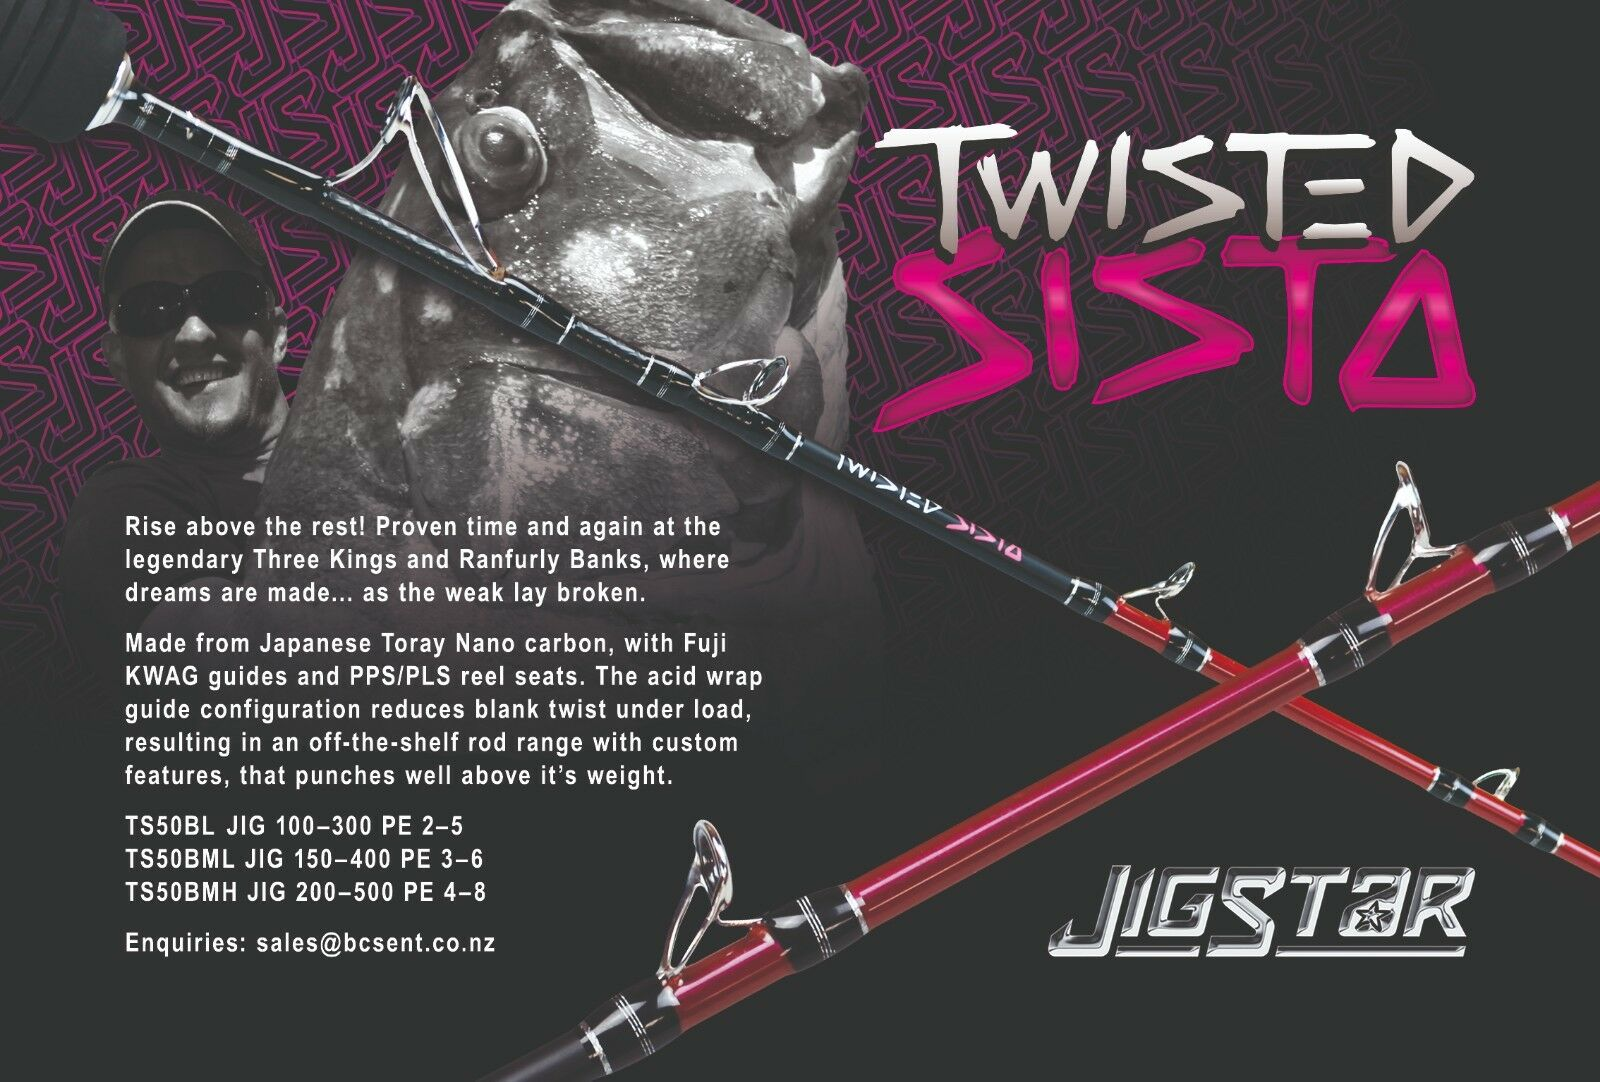 Jigstar Twisted Sista Jigging Rod 5ft Spiral  Guide (3 Ratings Available)  more affordable